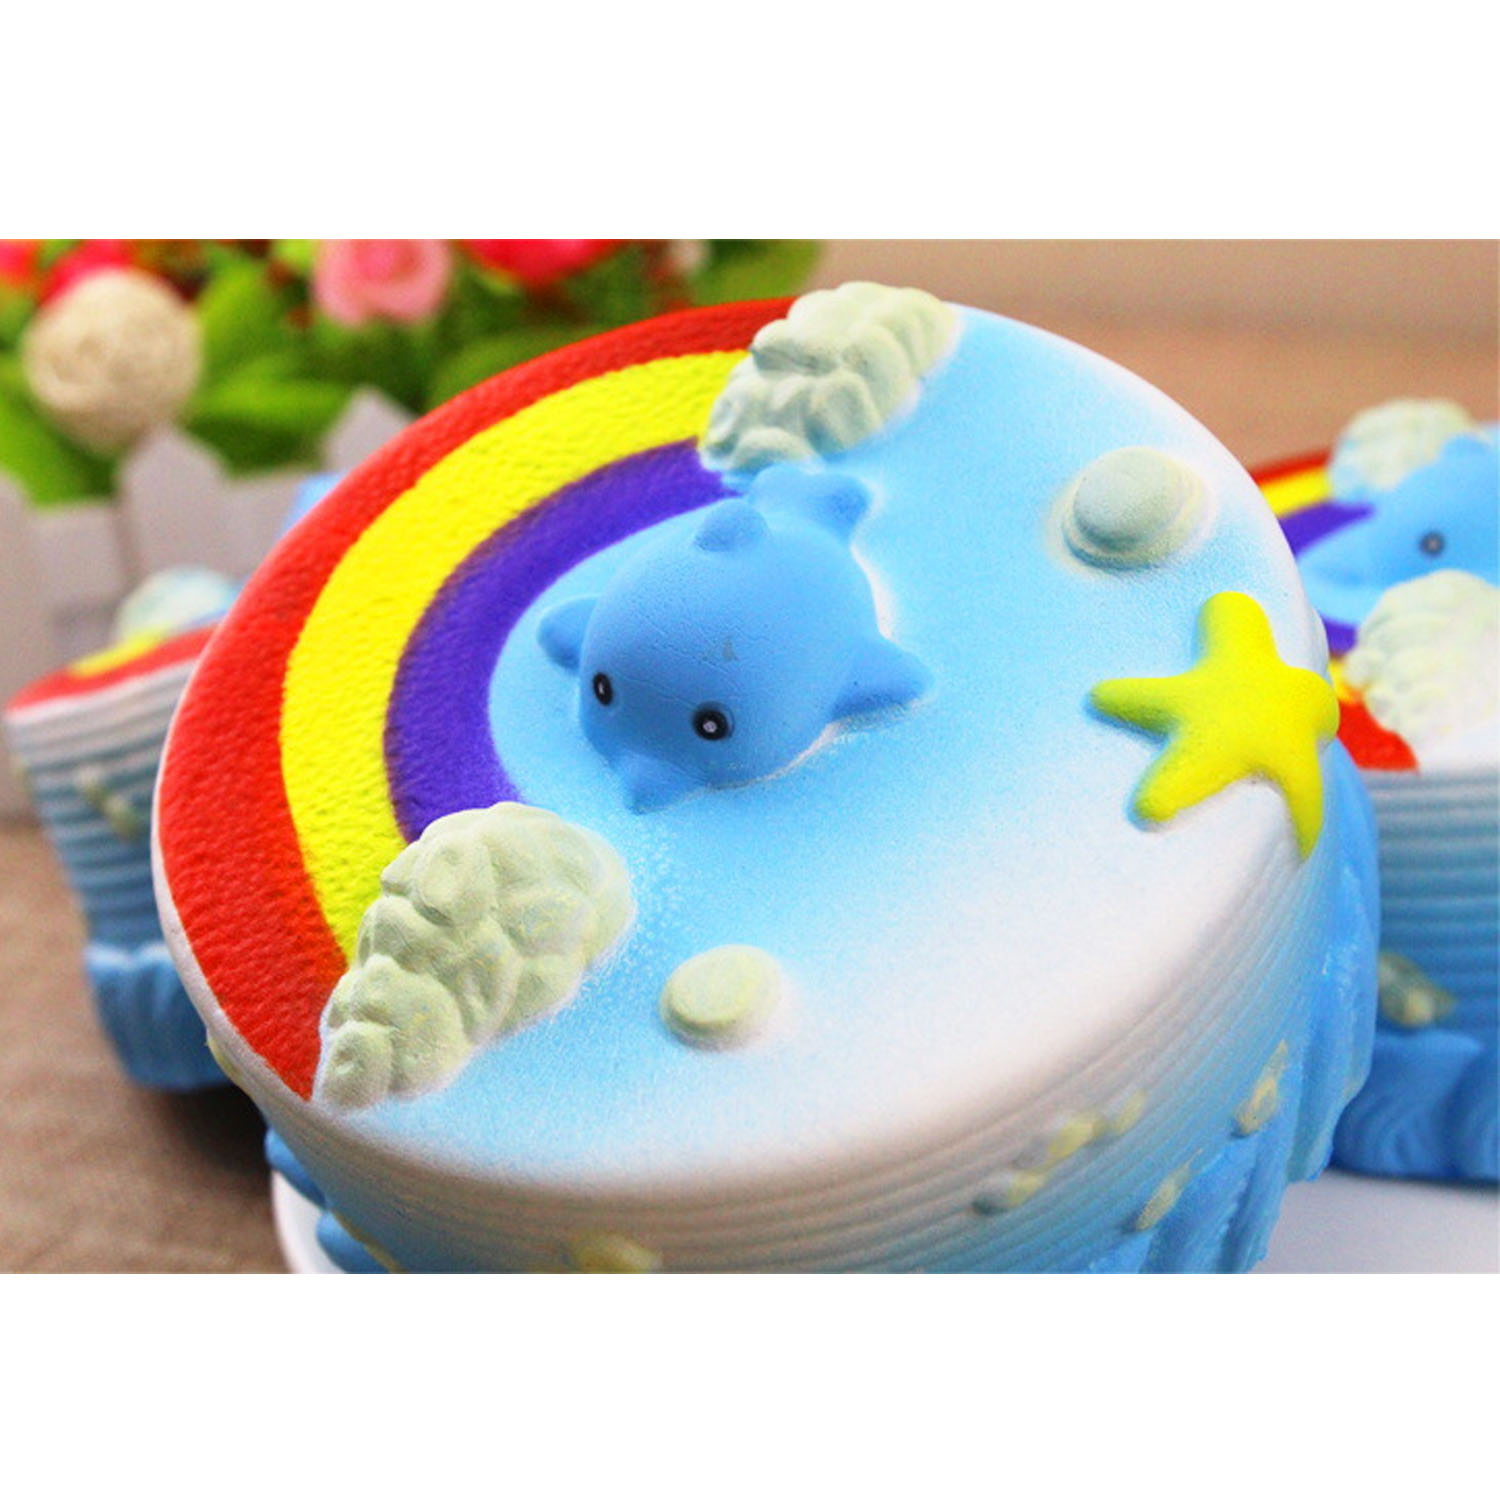 Satkago Cute Kawaii Soft Squishy Rainbow Cake Toy Slow Rising for Kids Adults Relieves Stress Anxiety Squeeze Antistress Squish